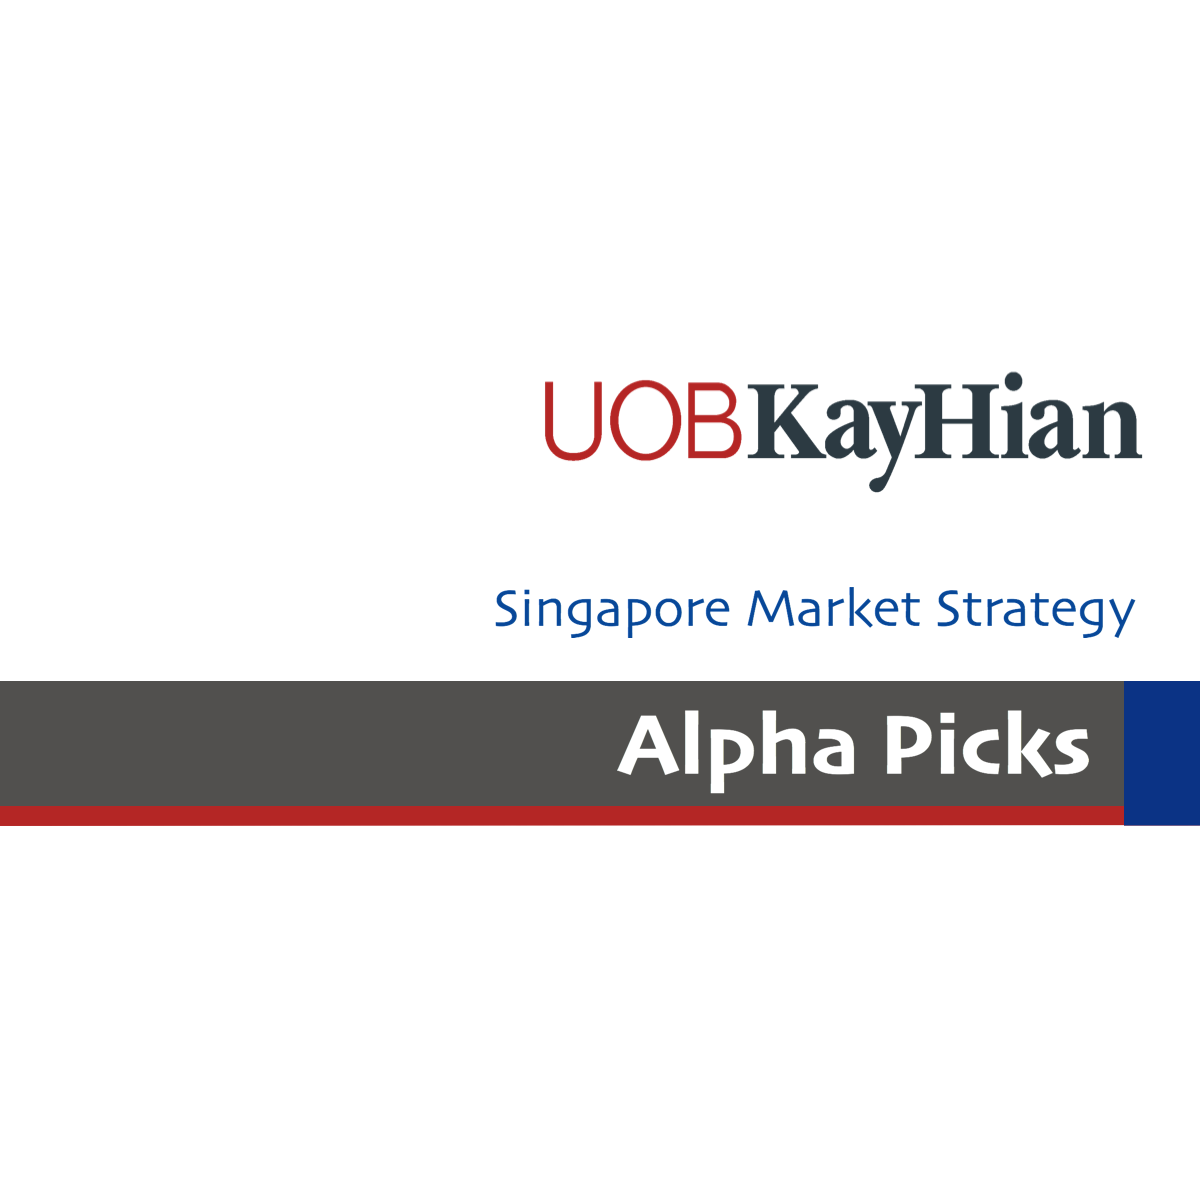 Alpha Picks - UOB Kay Hian 2017-05-03: Removing SMM Short And Buying CCT